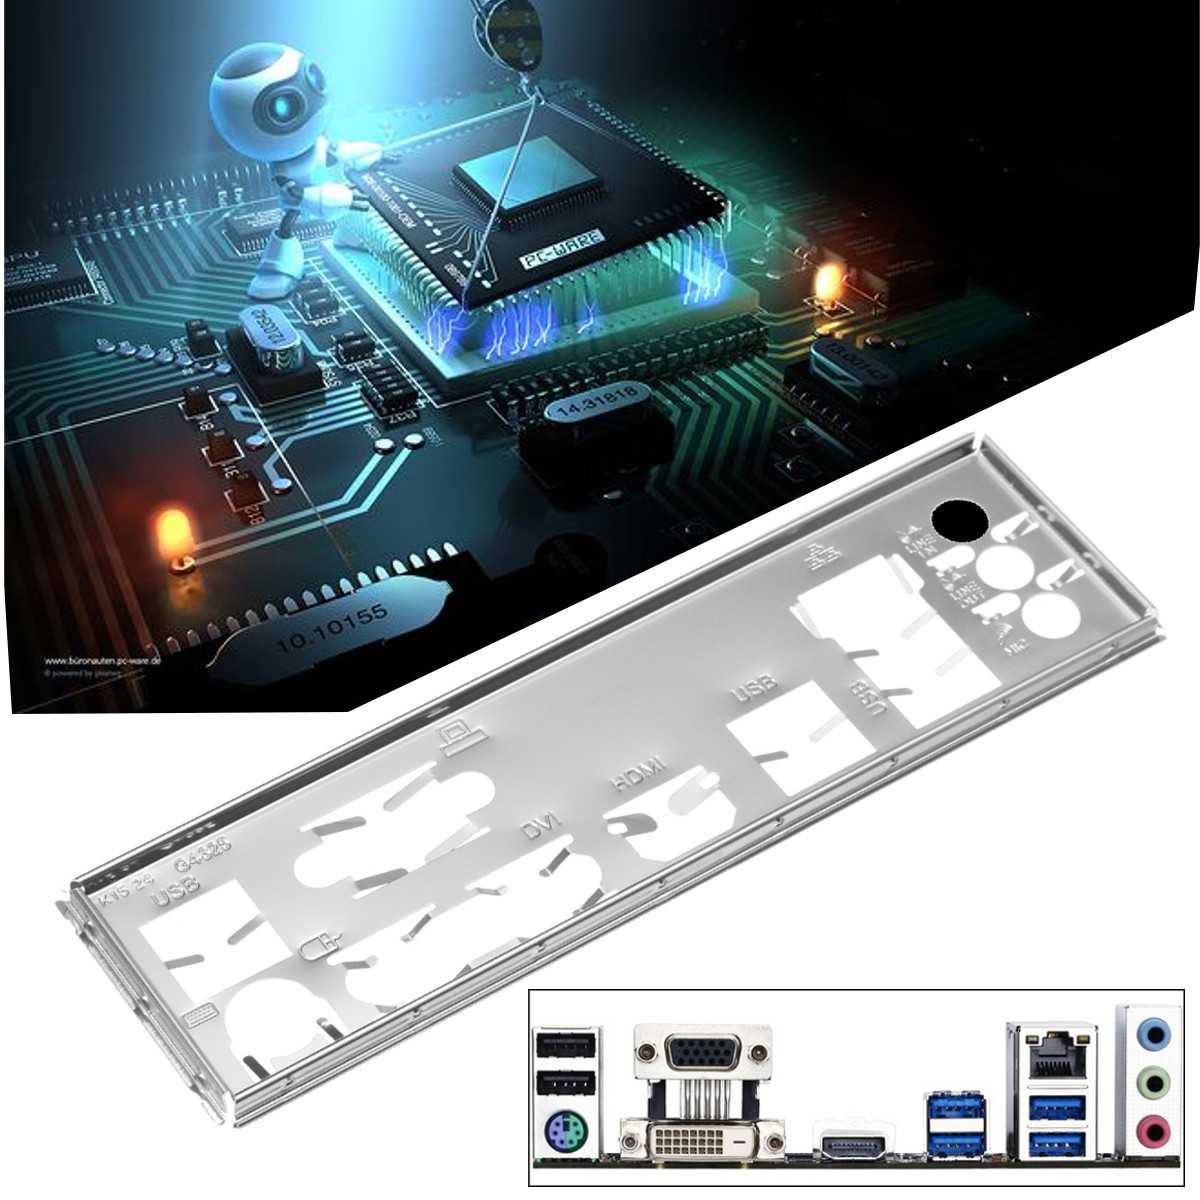 GA-78LMT Shield Back Plate Bracket Motherboard Motherboard Header Connector Cable Adapter With PCI Slot Plate Bracket